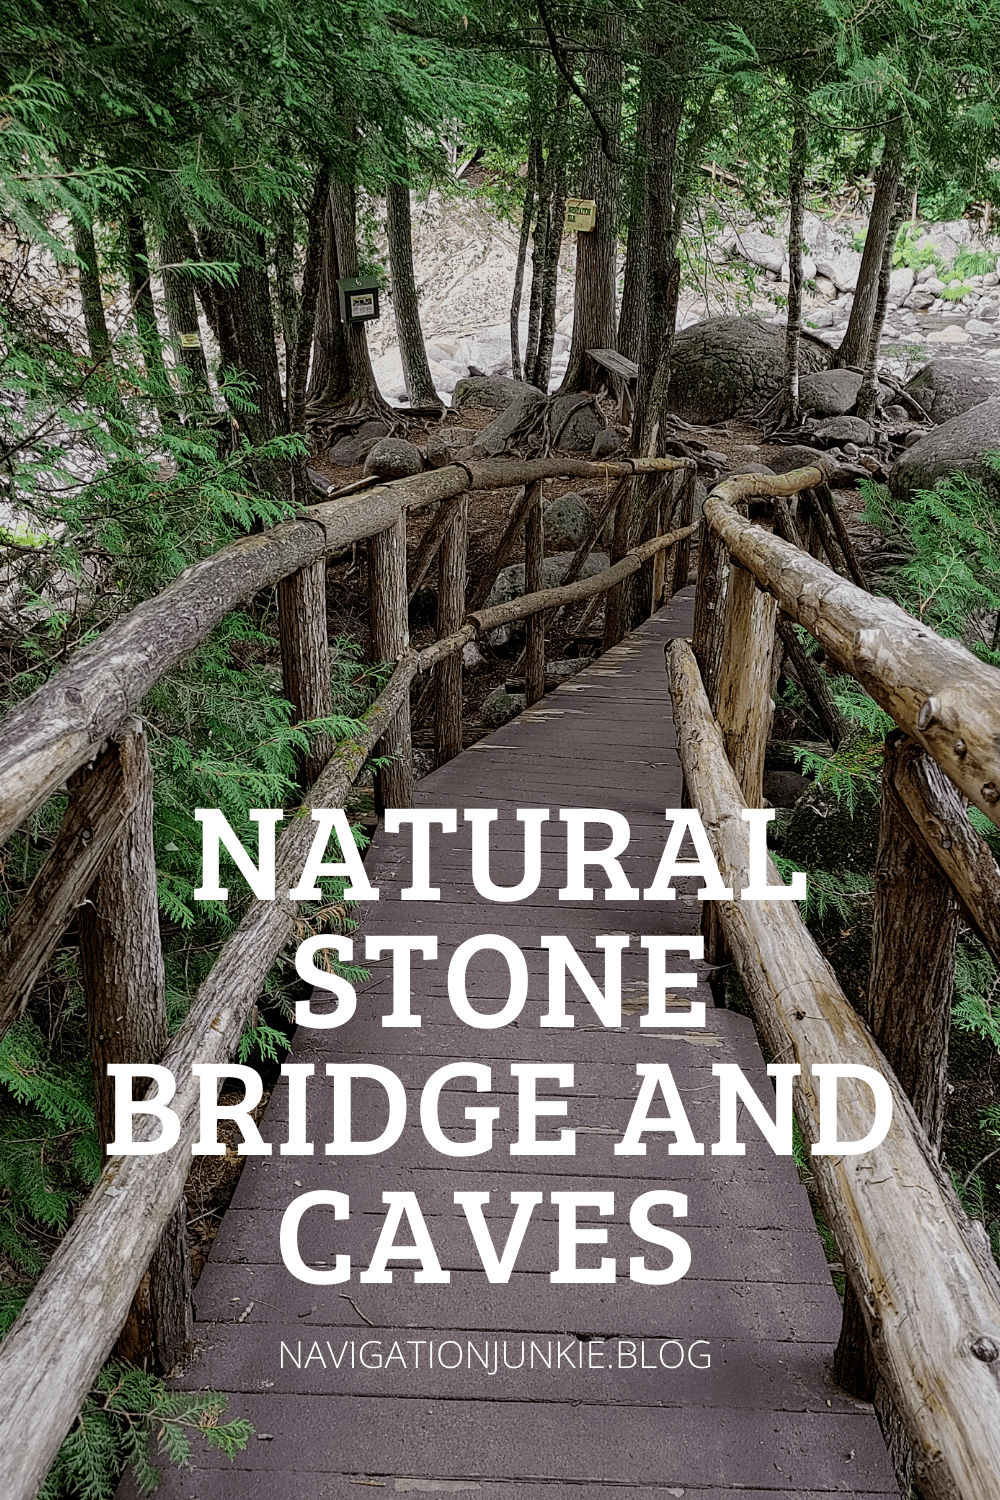 The Natural Stone Bridge and Caves trail will take you past the stone bridge, the largest cave entrance in the Eastern US, and natural potholes.